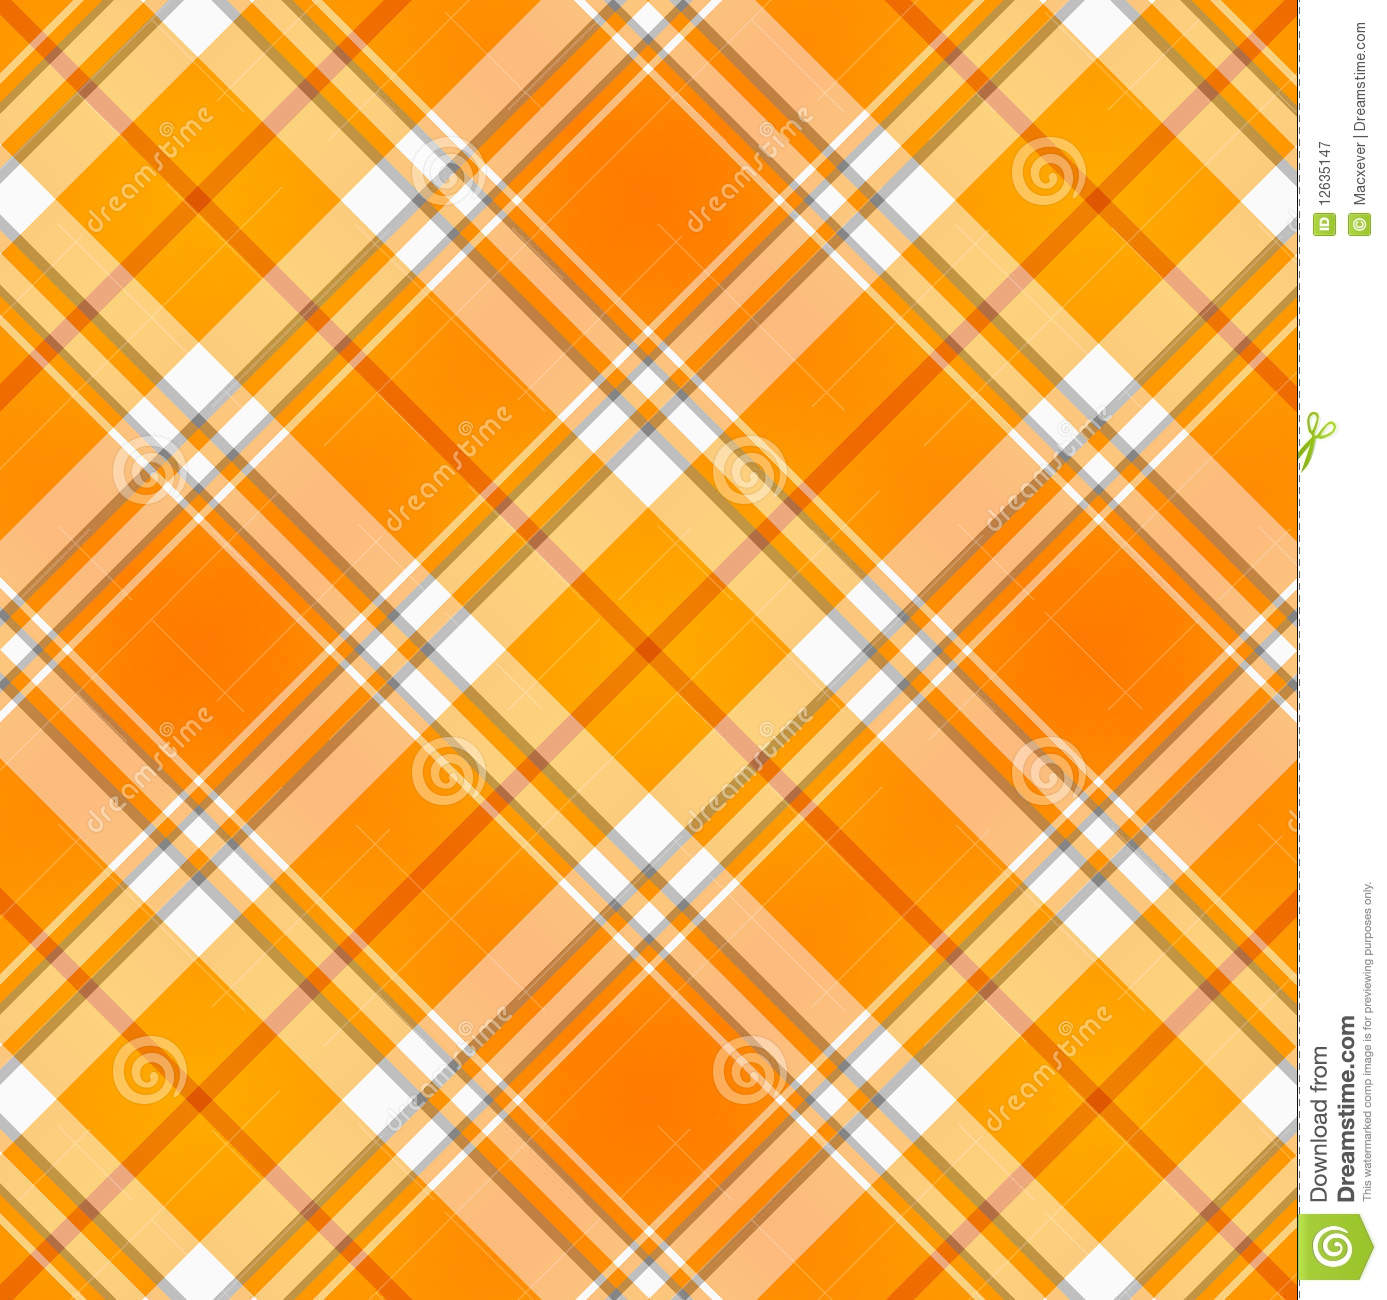 https://thumbs.dreamstime.com/z/orange-tartan-plaid-fabric-12635147.jpg